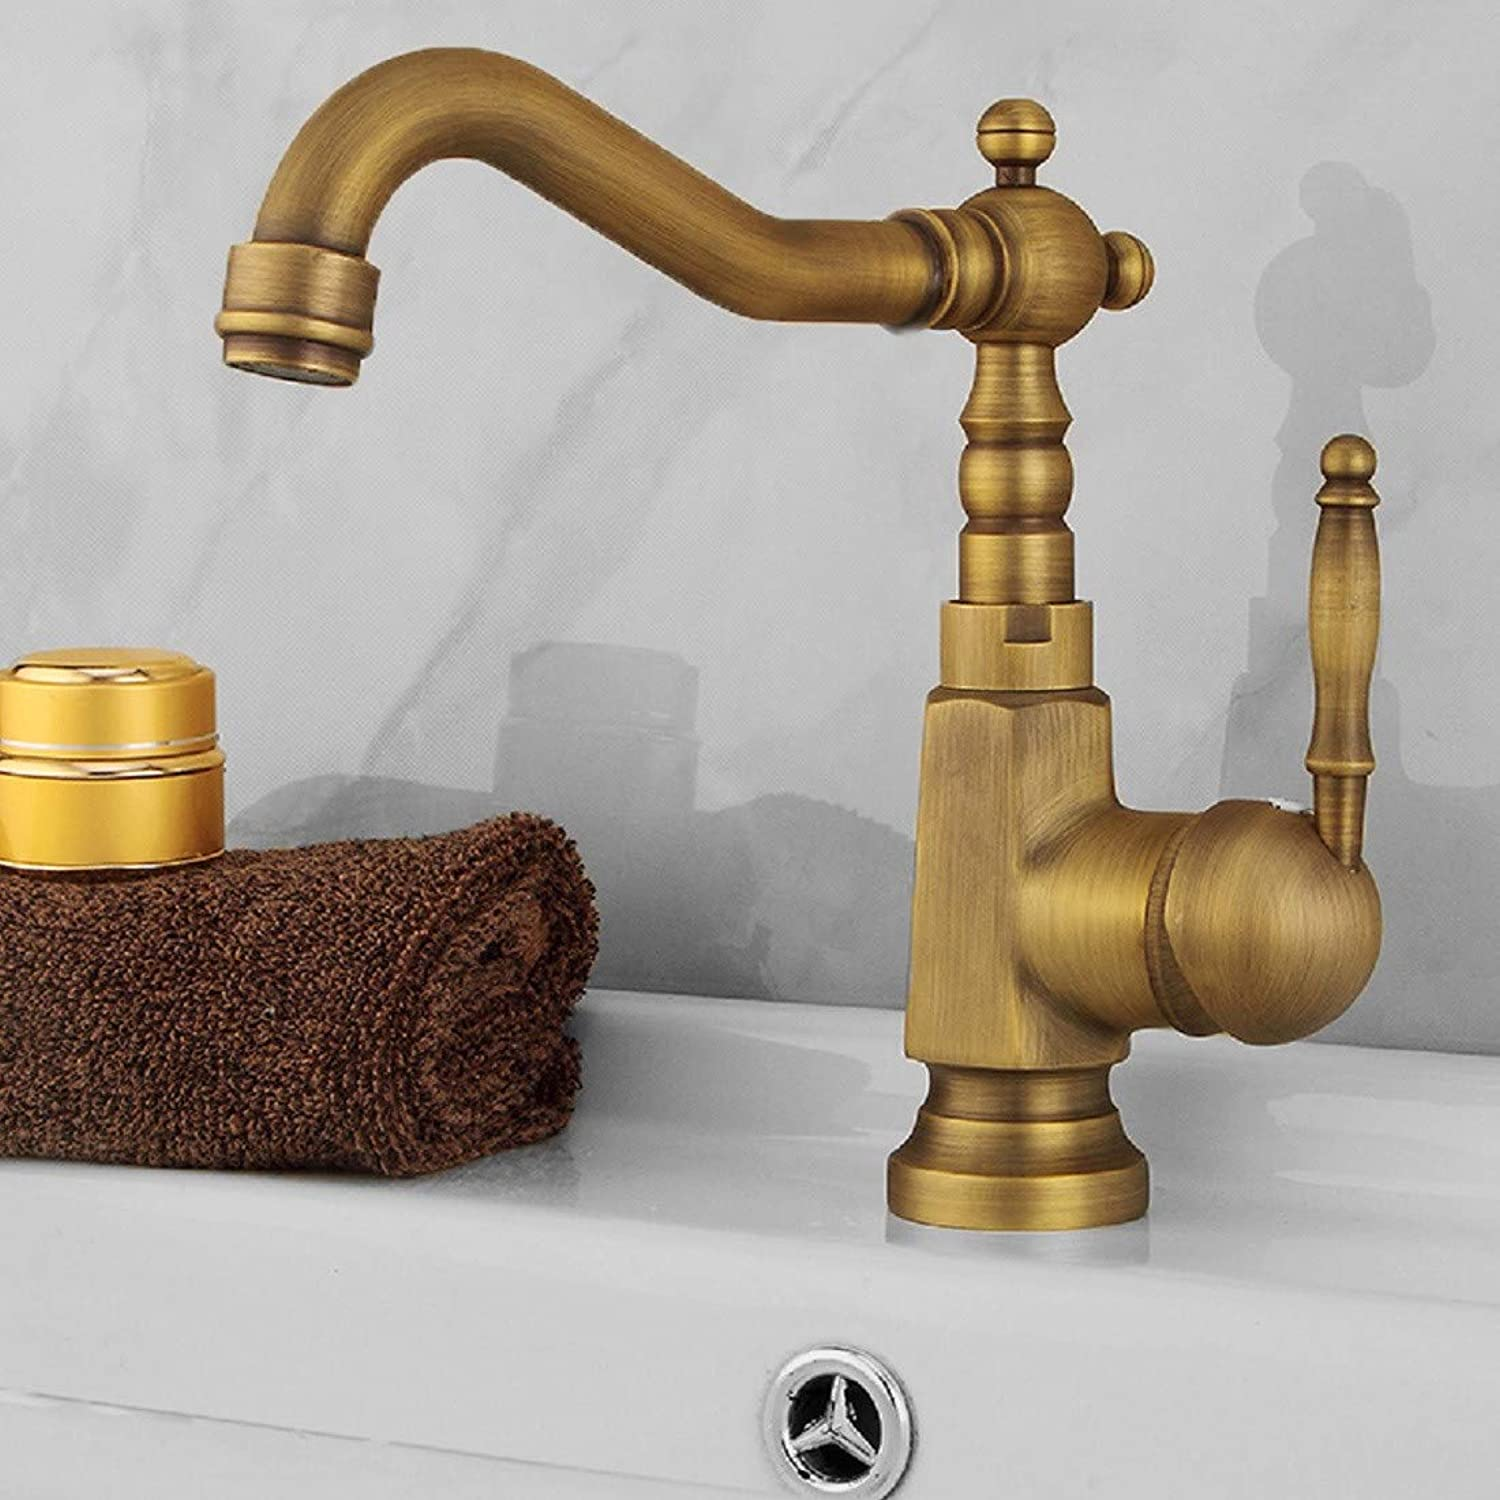 Bathroom Taps European Style Hot and Cold Imitation Antique Tap Pure Copper Casting Single Tap Faucet Bathroom Sink Tap Basin Sink Mixer Tap